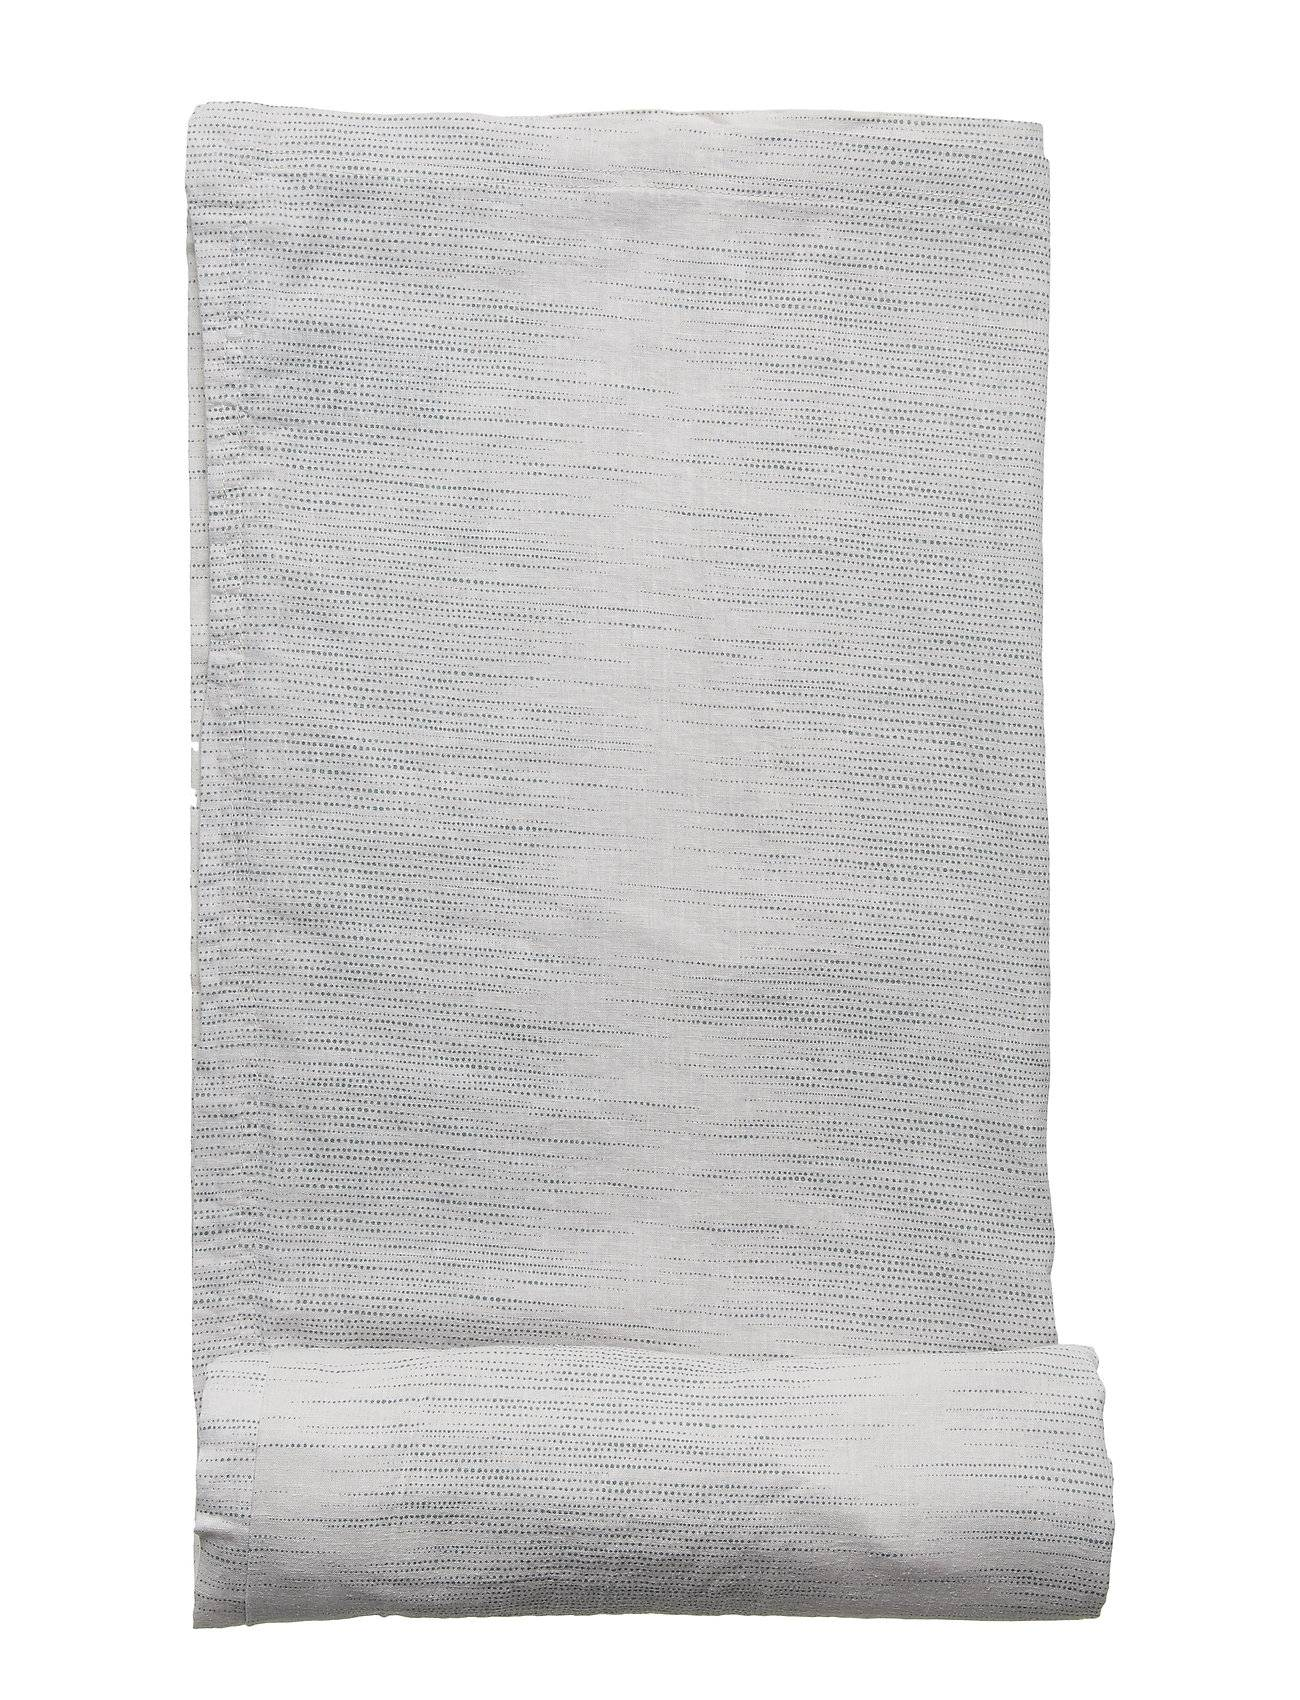 Gripsholm Table Cloth Leo Home Kitchen Tablecloth Harmaa Gripsholm